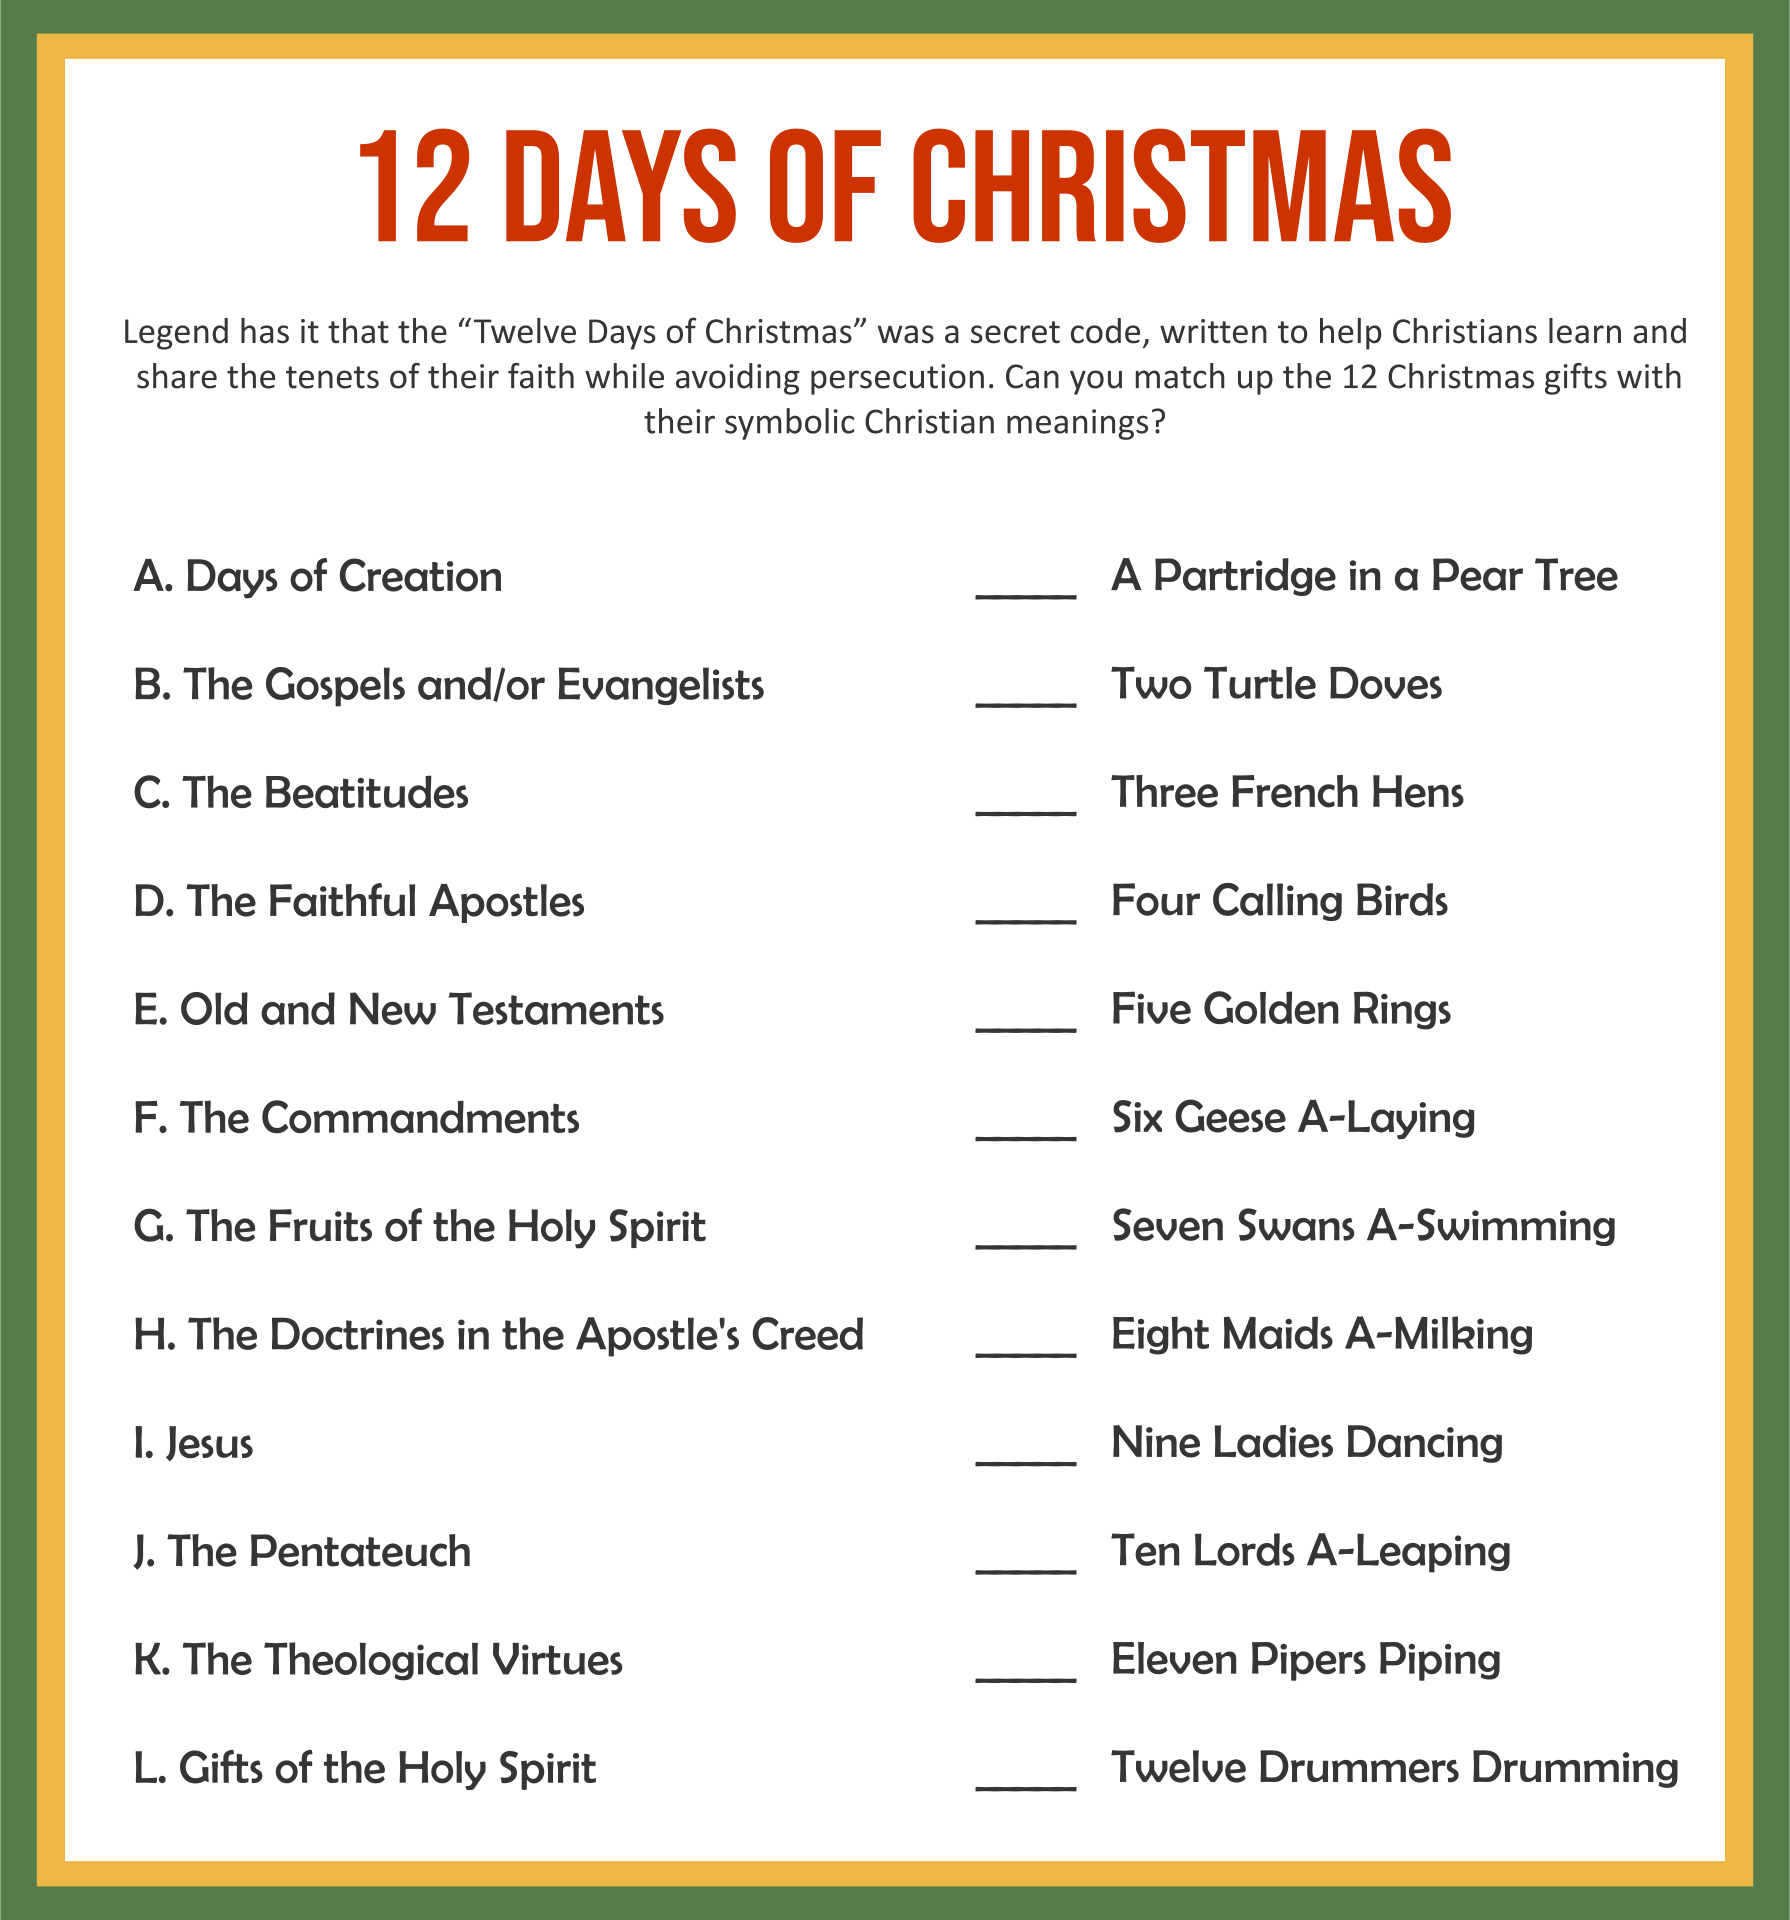 12 Days of Christmas Trivia